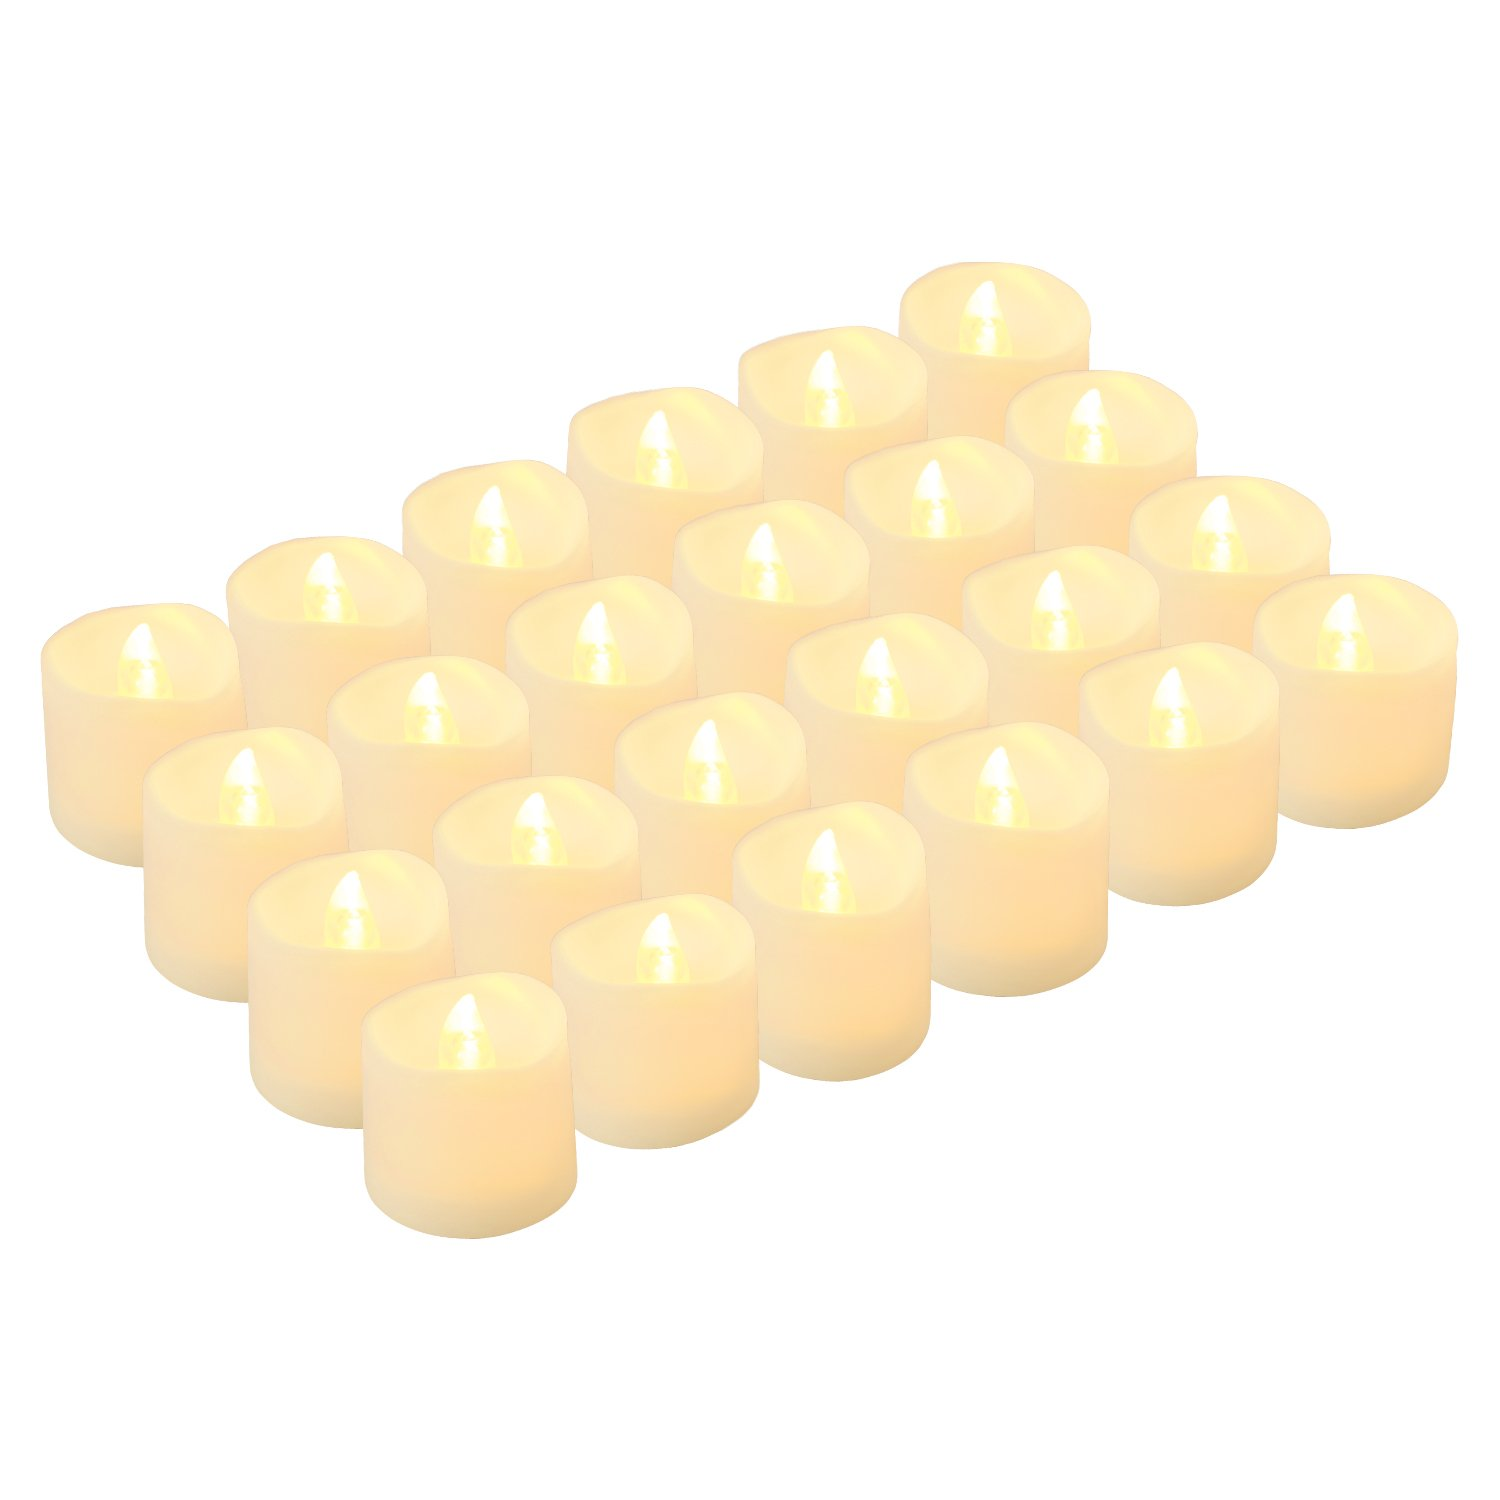 LED Tea Lights Candles, Kohree Flameless Candles Battery Operated LED Candles, Flickering Tealight Candles, Warm White, Pack of 24 by Kohree